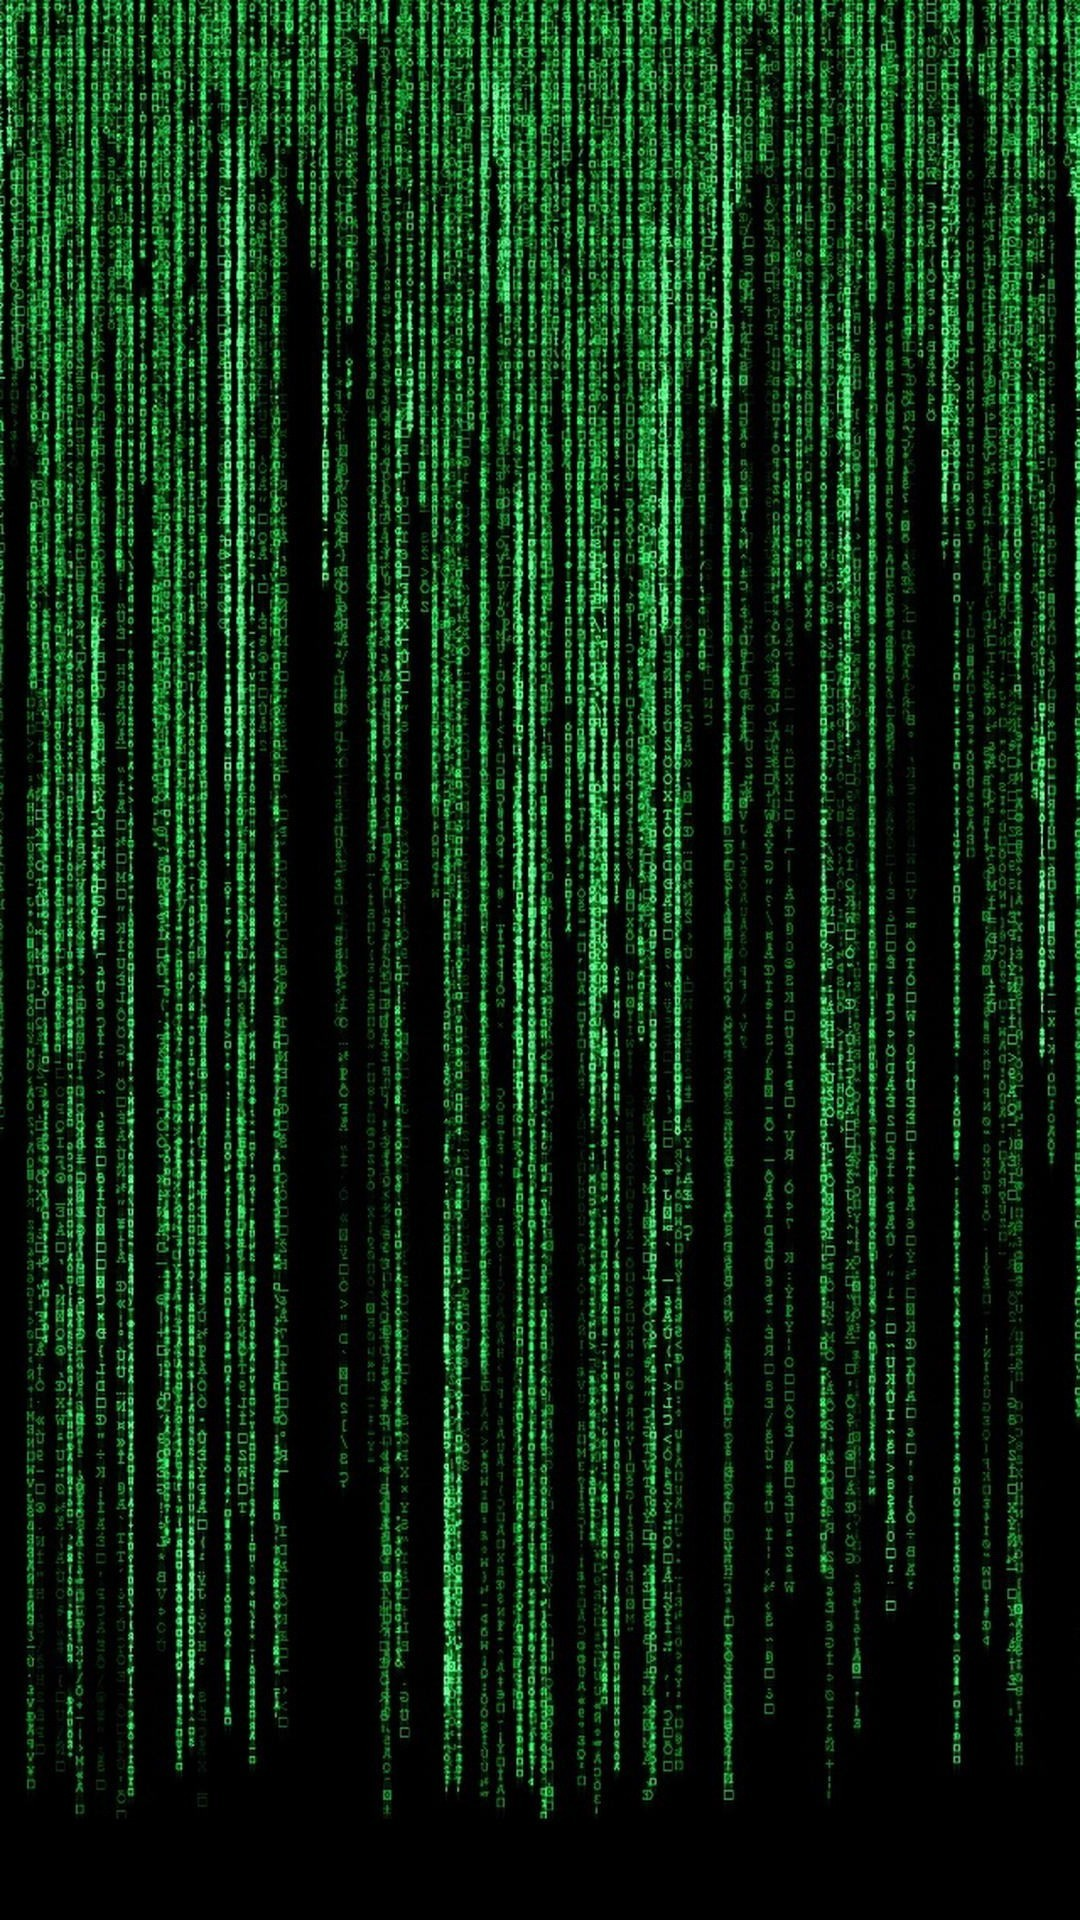 The Matrix, Movies, Code Wallpapers HD / Desktop and Mobile Backgrounds